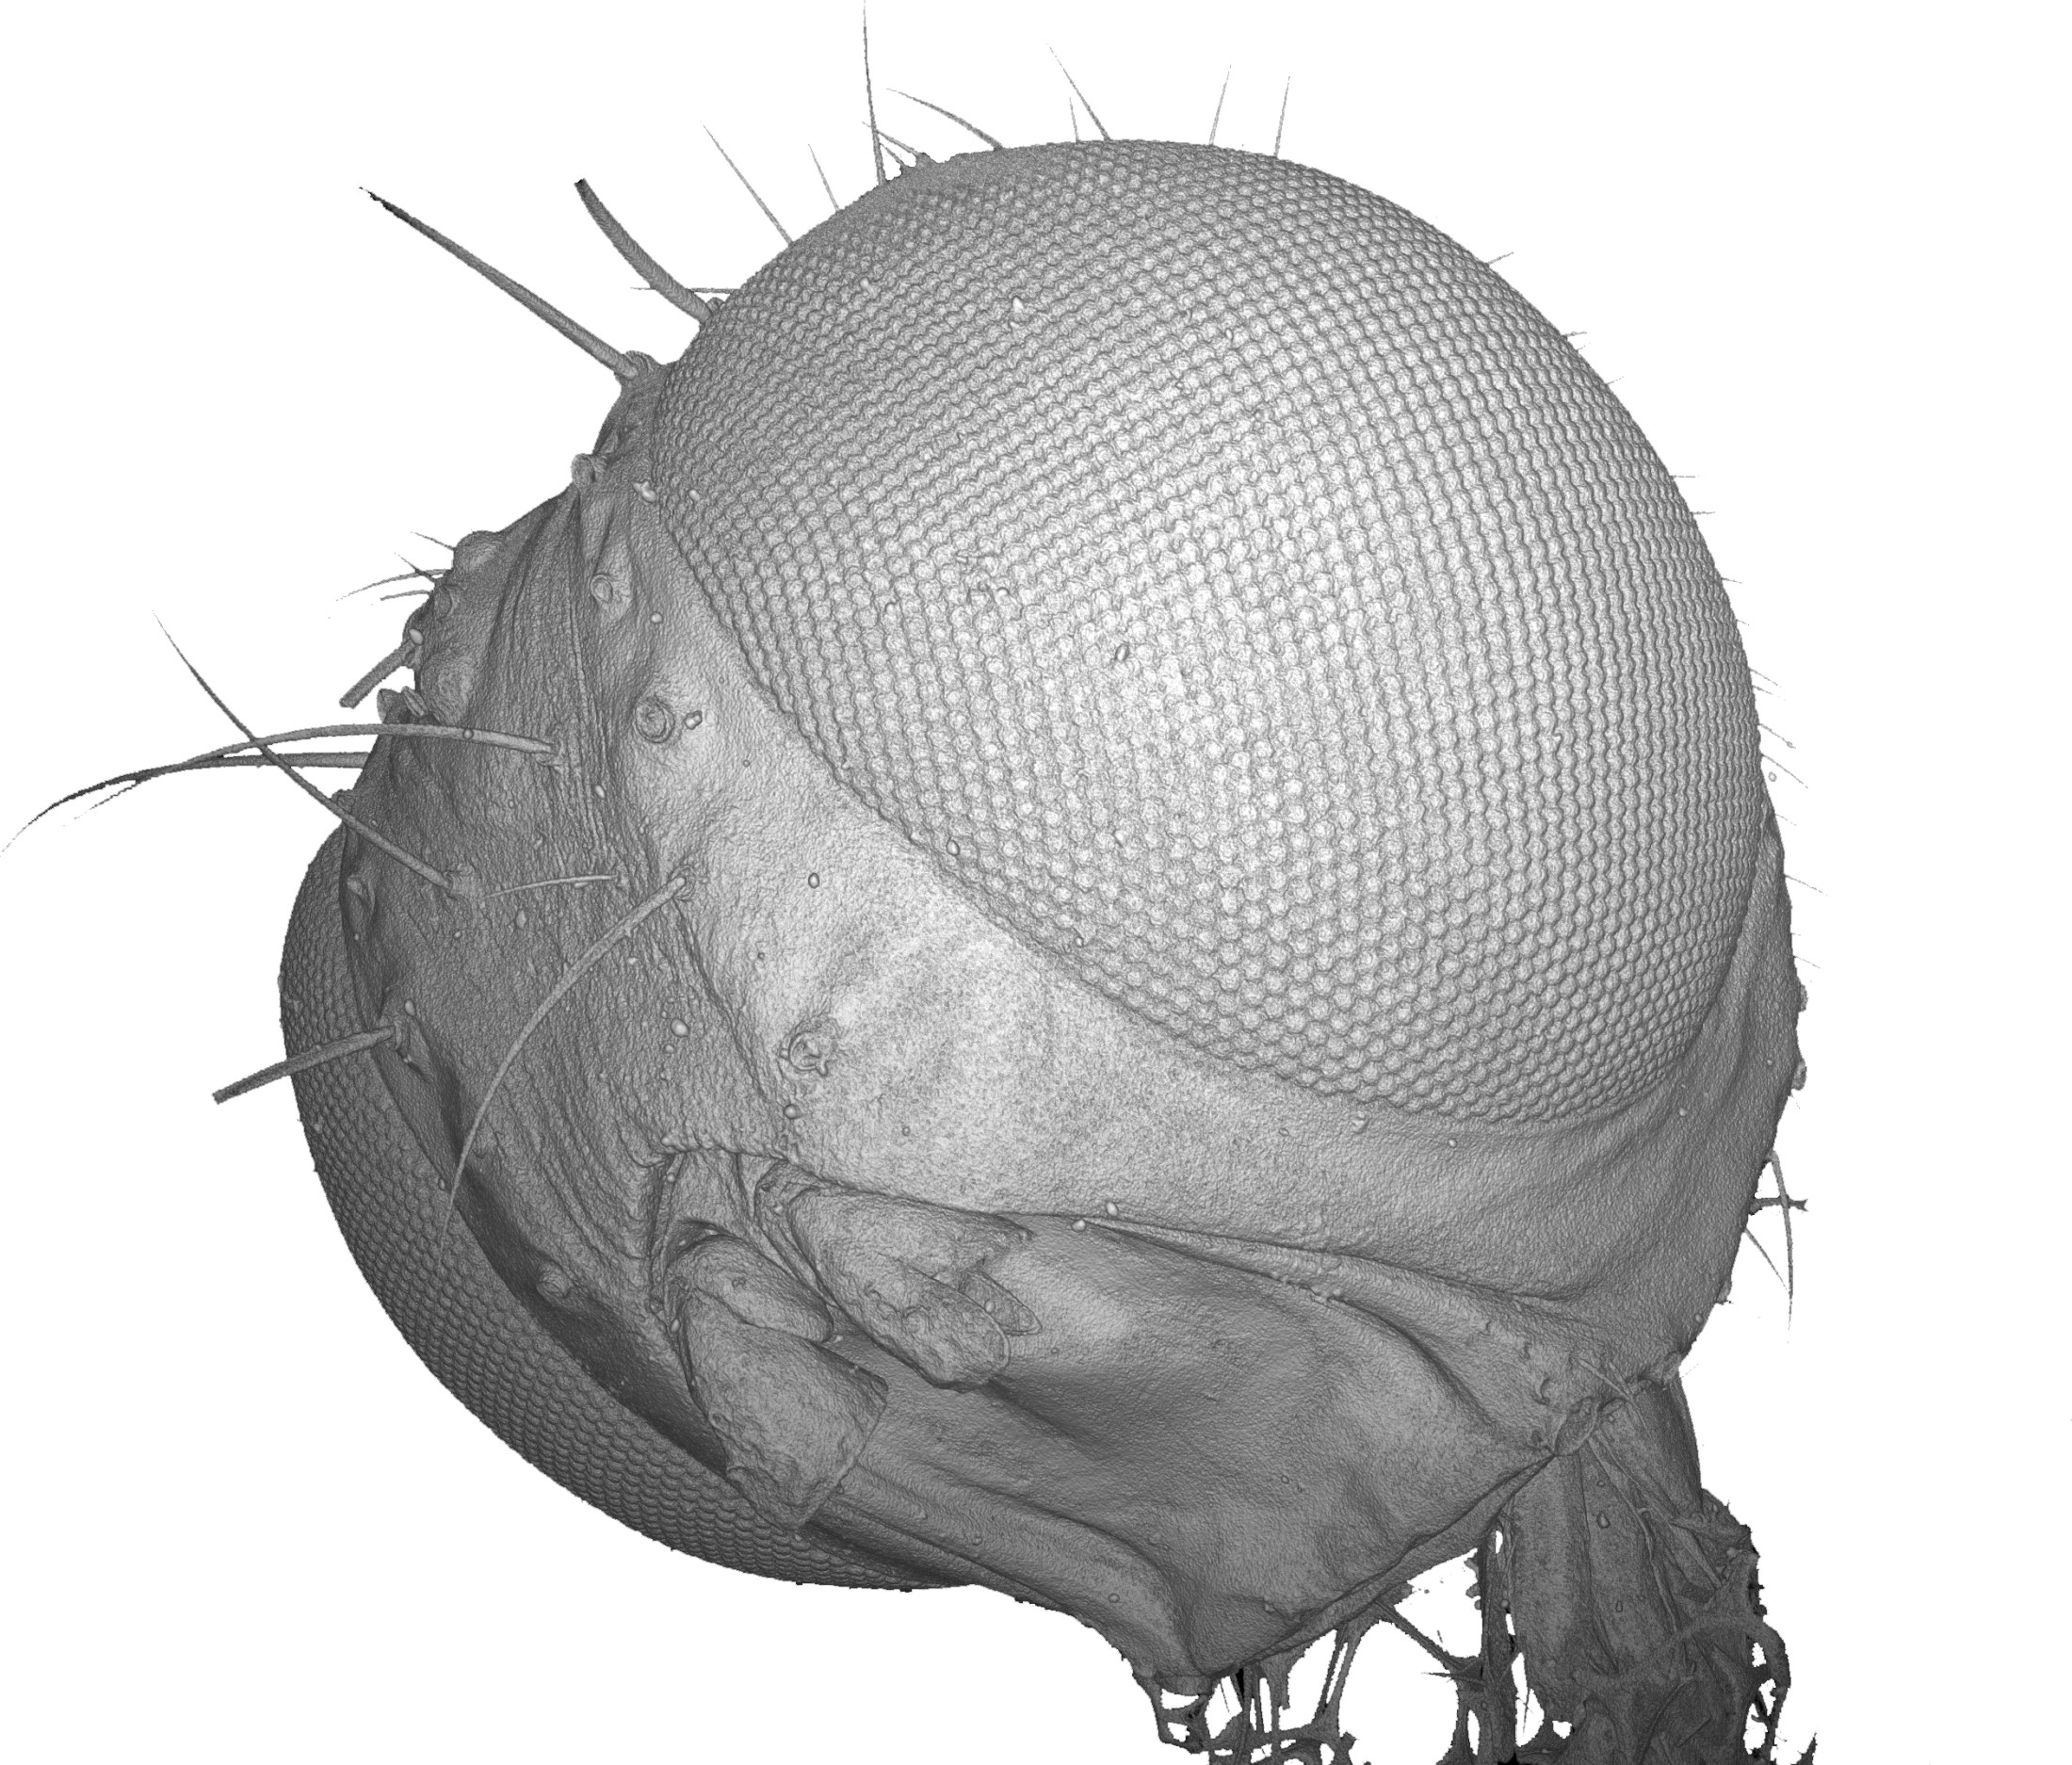 3D CT-reconstruction of an insect's head (Nyrmea kervillea) for investigation of the finest structures of microscopic biological samples. Normal scan (0.8 µm / 45 min): 3D CT-reconstruction of an insect's head (Nyrmea kervillea) for investigation of the finest structures of microscopic biological samples. Normal scan (0.8 µm / 45 min)